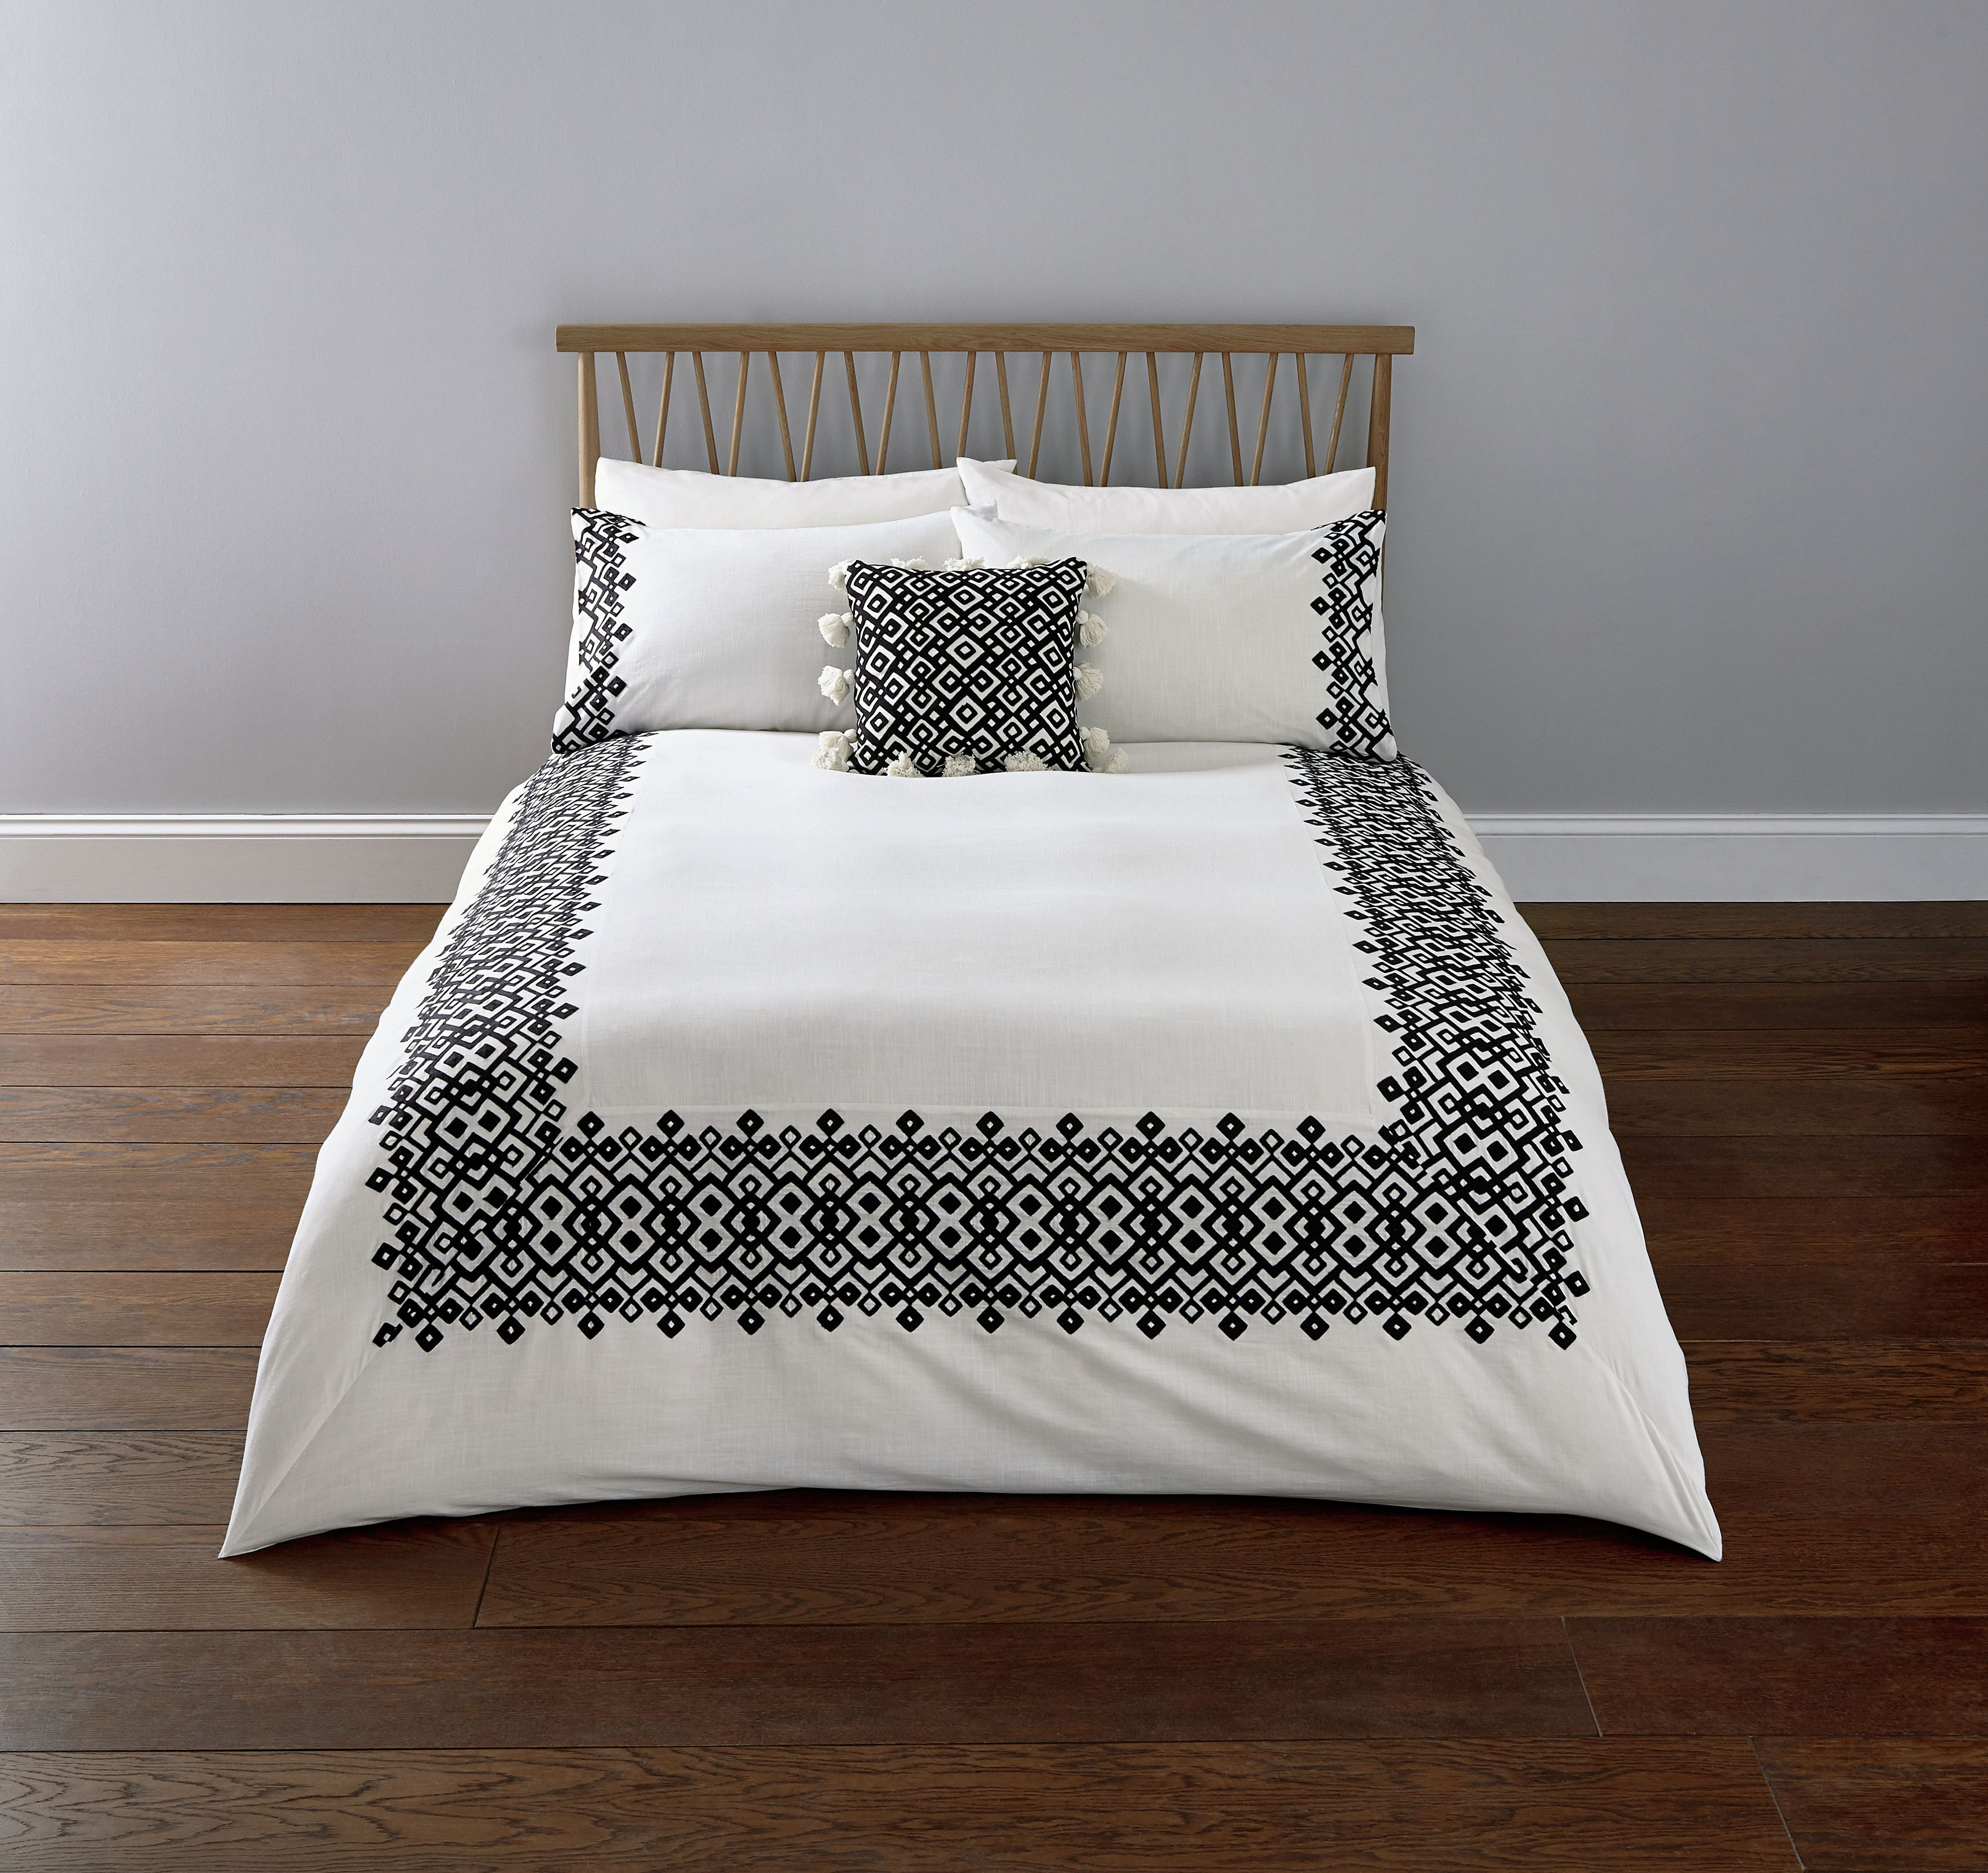 Small Double Duvet Cover